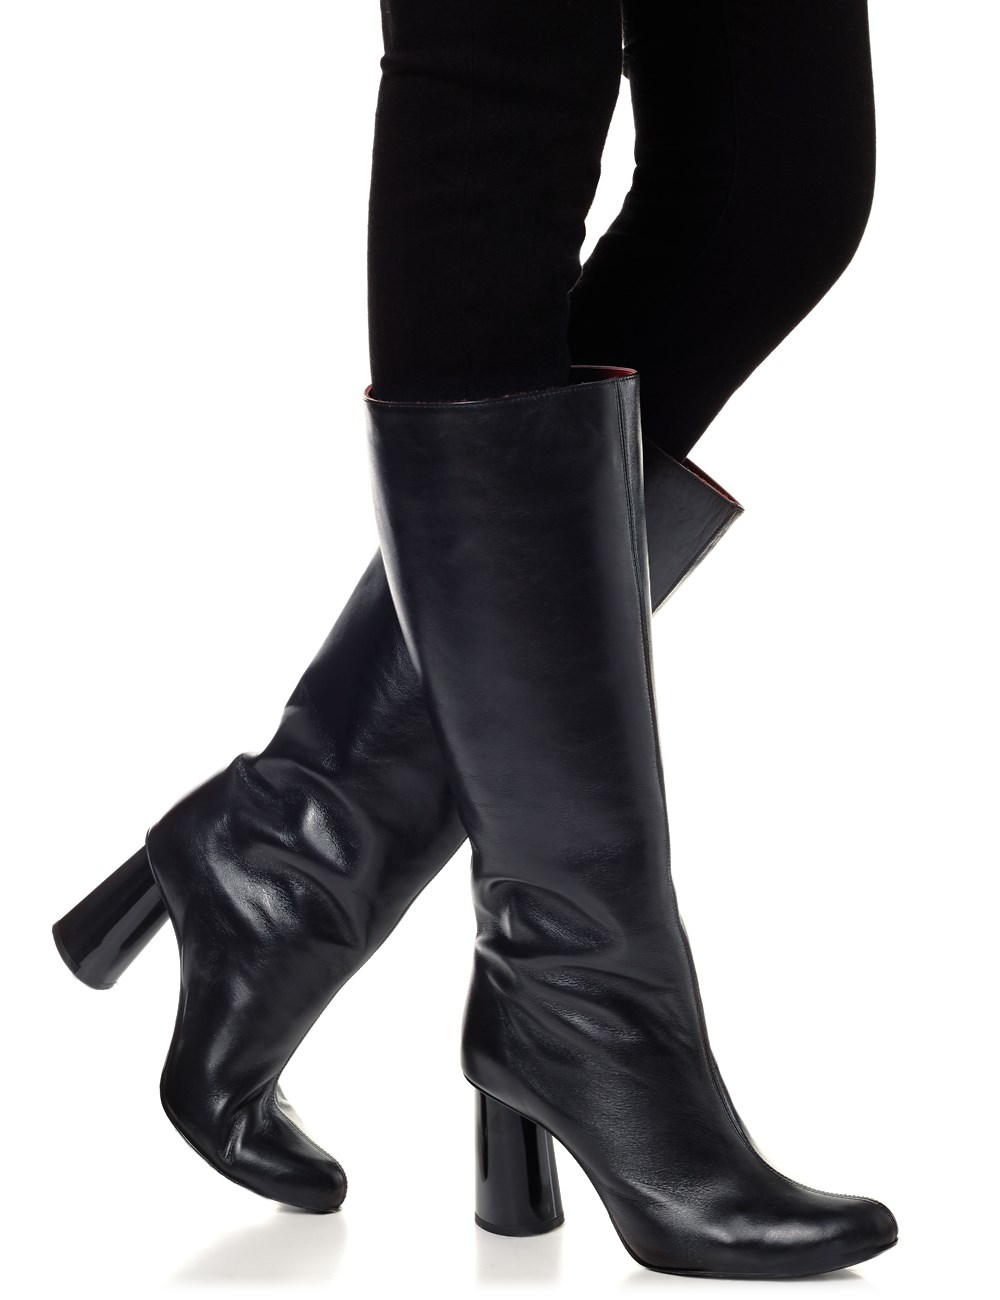 Find great deals on eBay for long black leather boots. Shop with confidence.